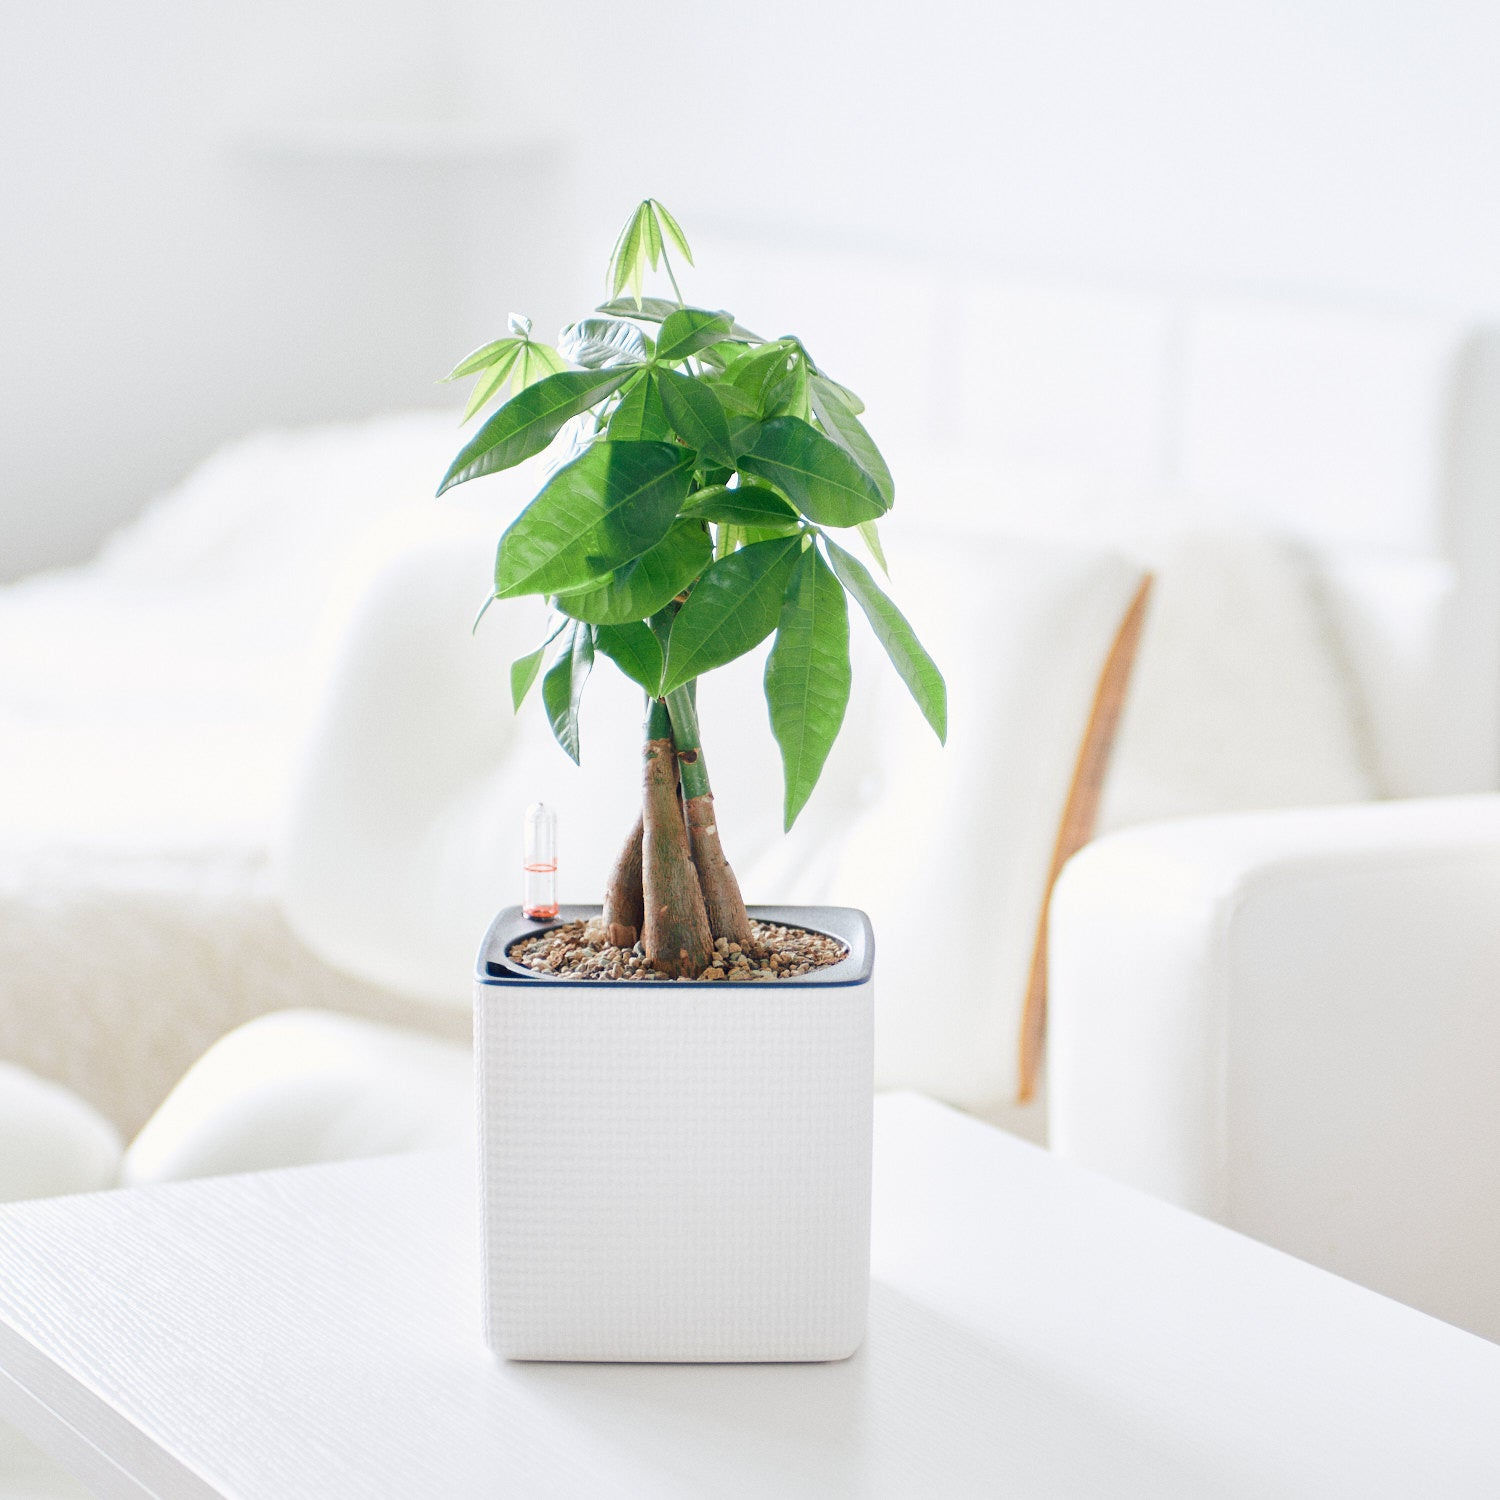 Money Tree Potted In Lechuza Cube 14 White Planter - My City Plants